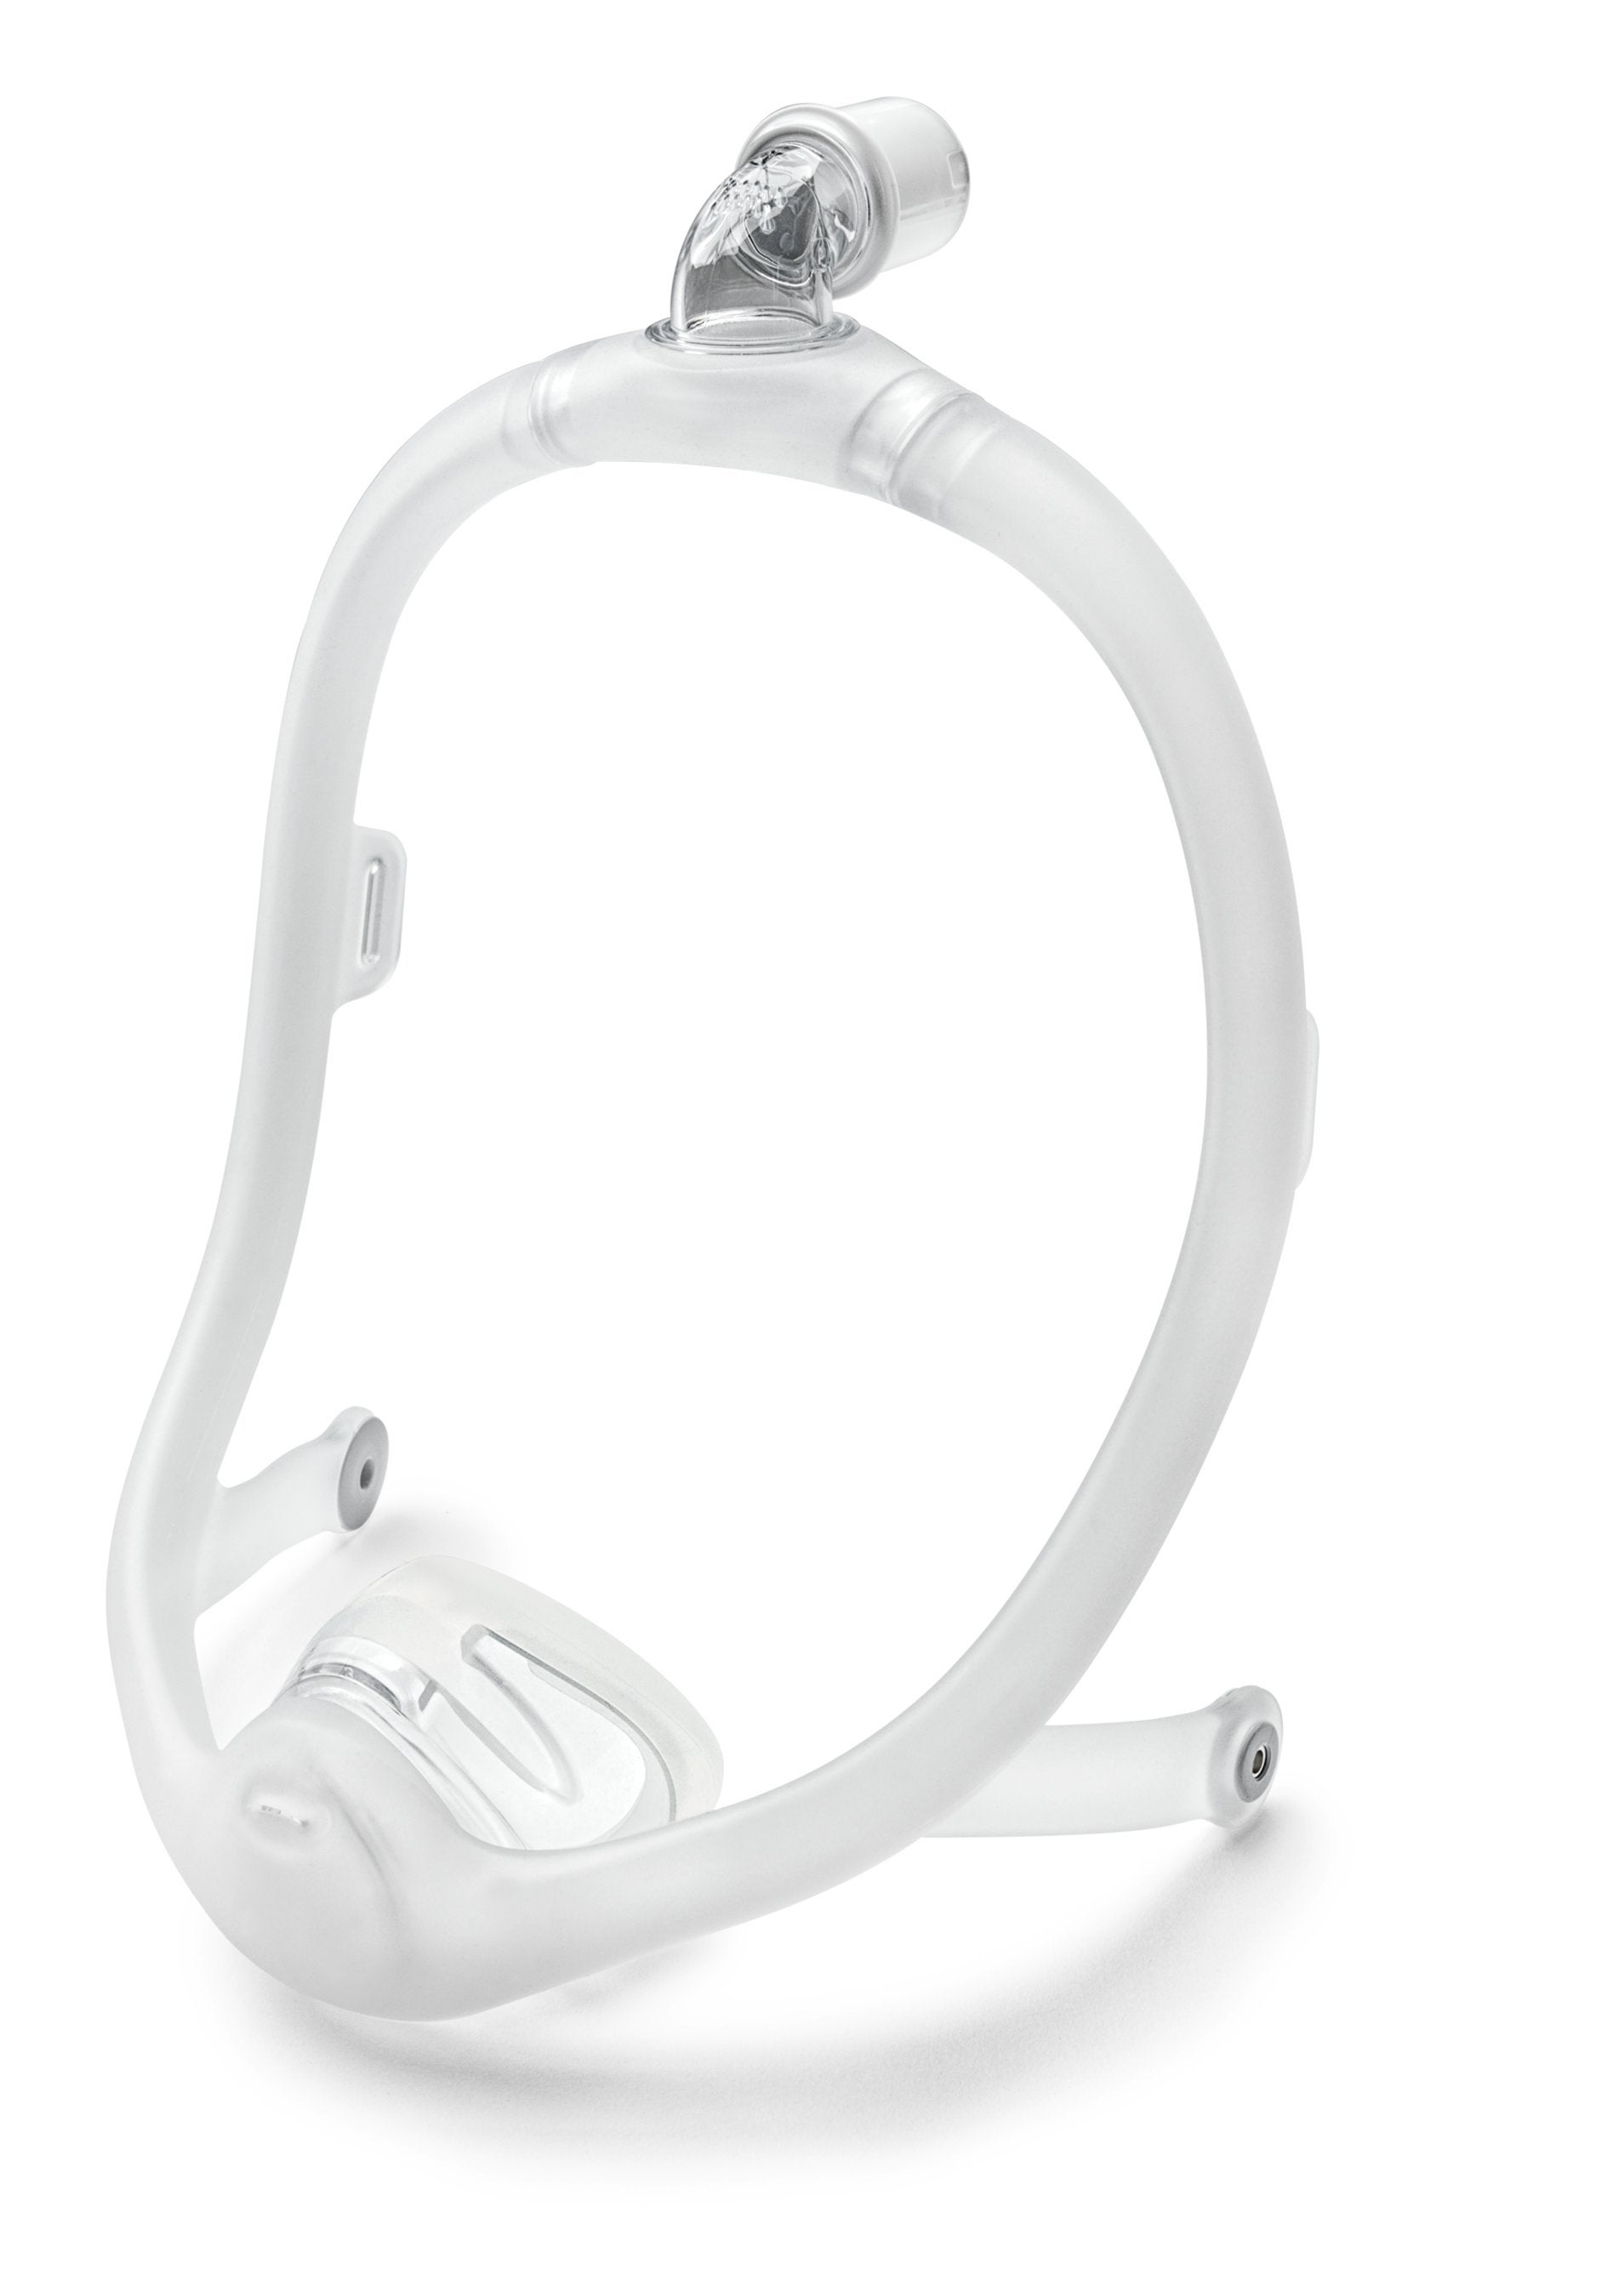 DreamWisp Nasal CPAP Mask WITHOUT Headgear